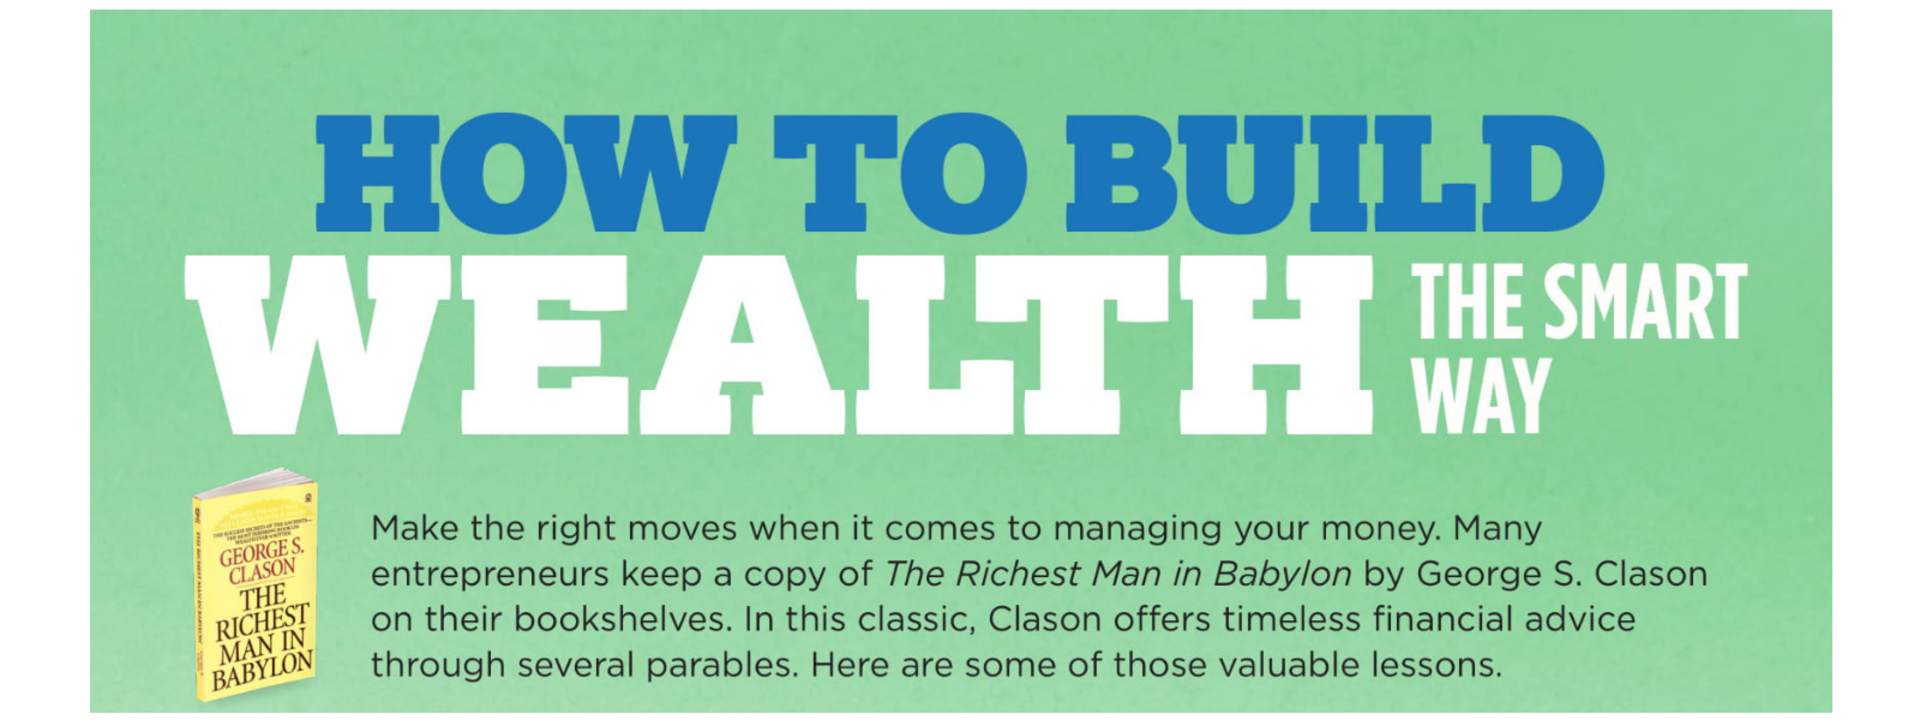 How to Build Wealth the Smart Way